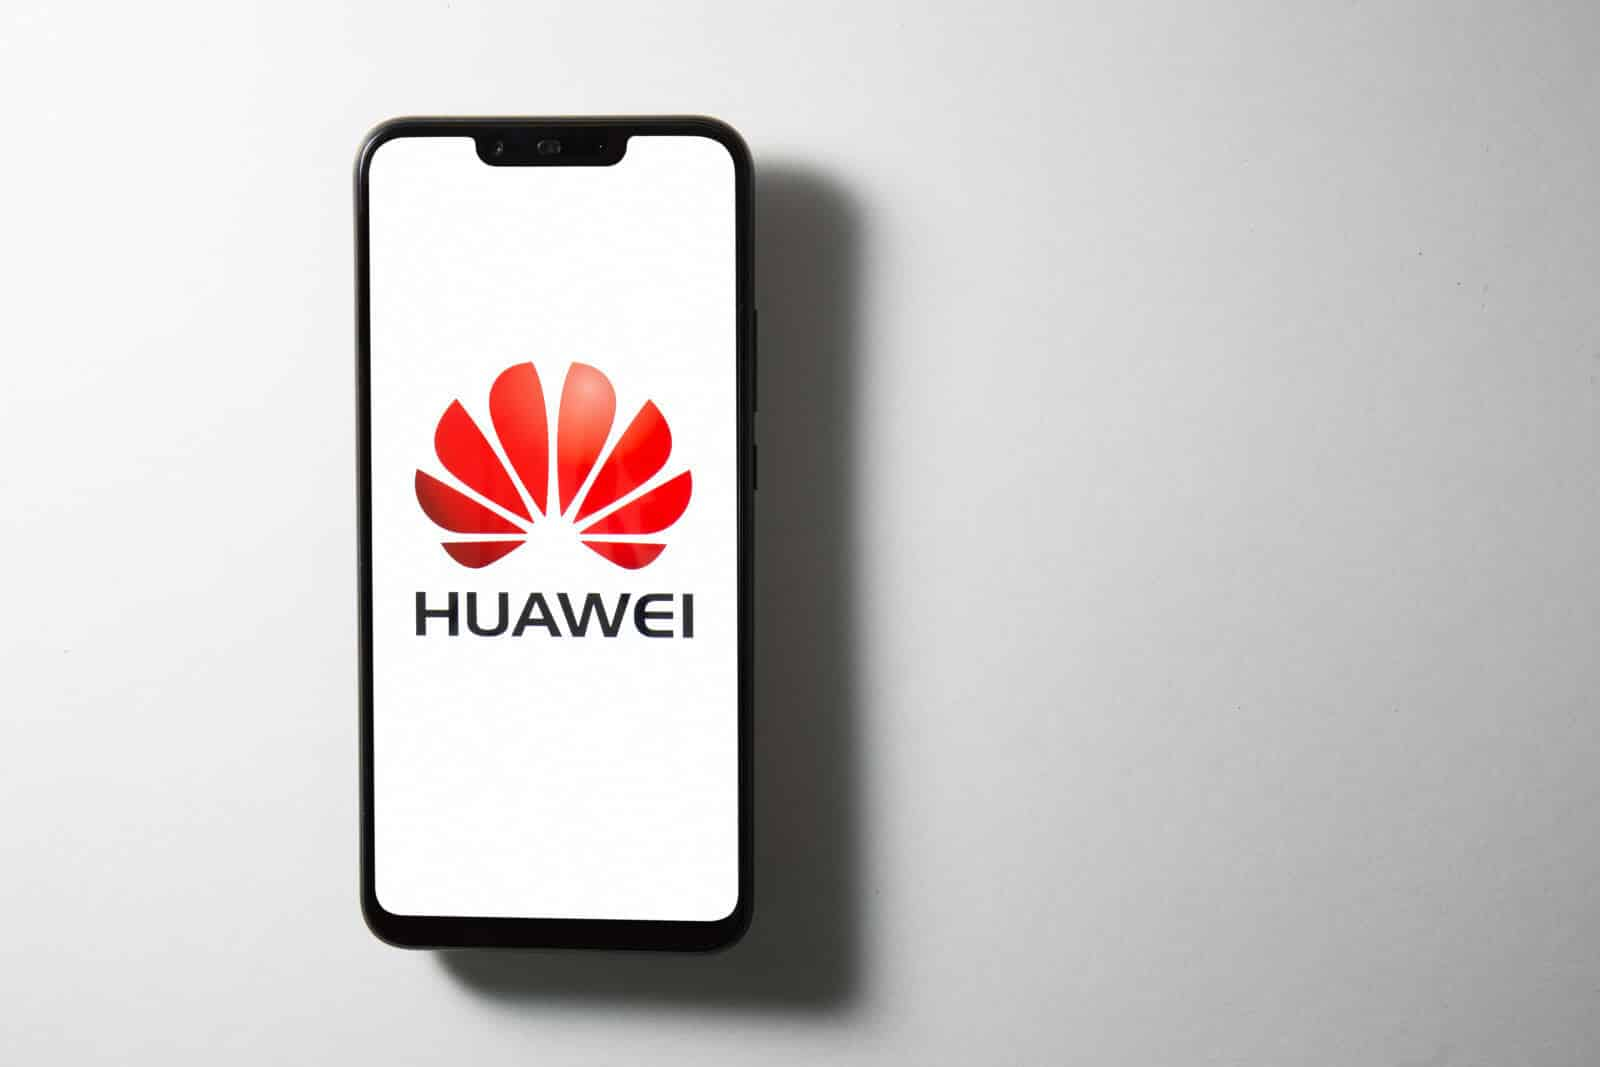 Huawei reportedly shows ads on some of its phone's lock screens and people are not happy